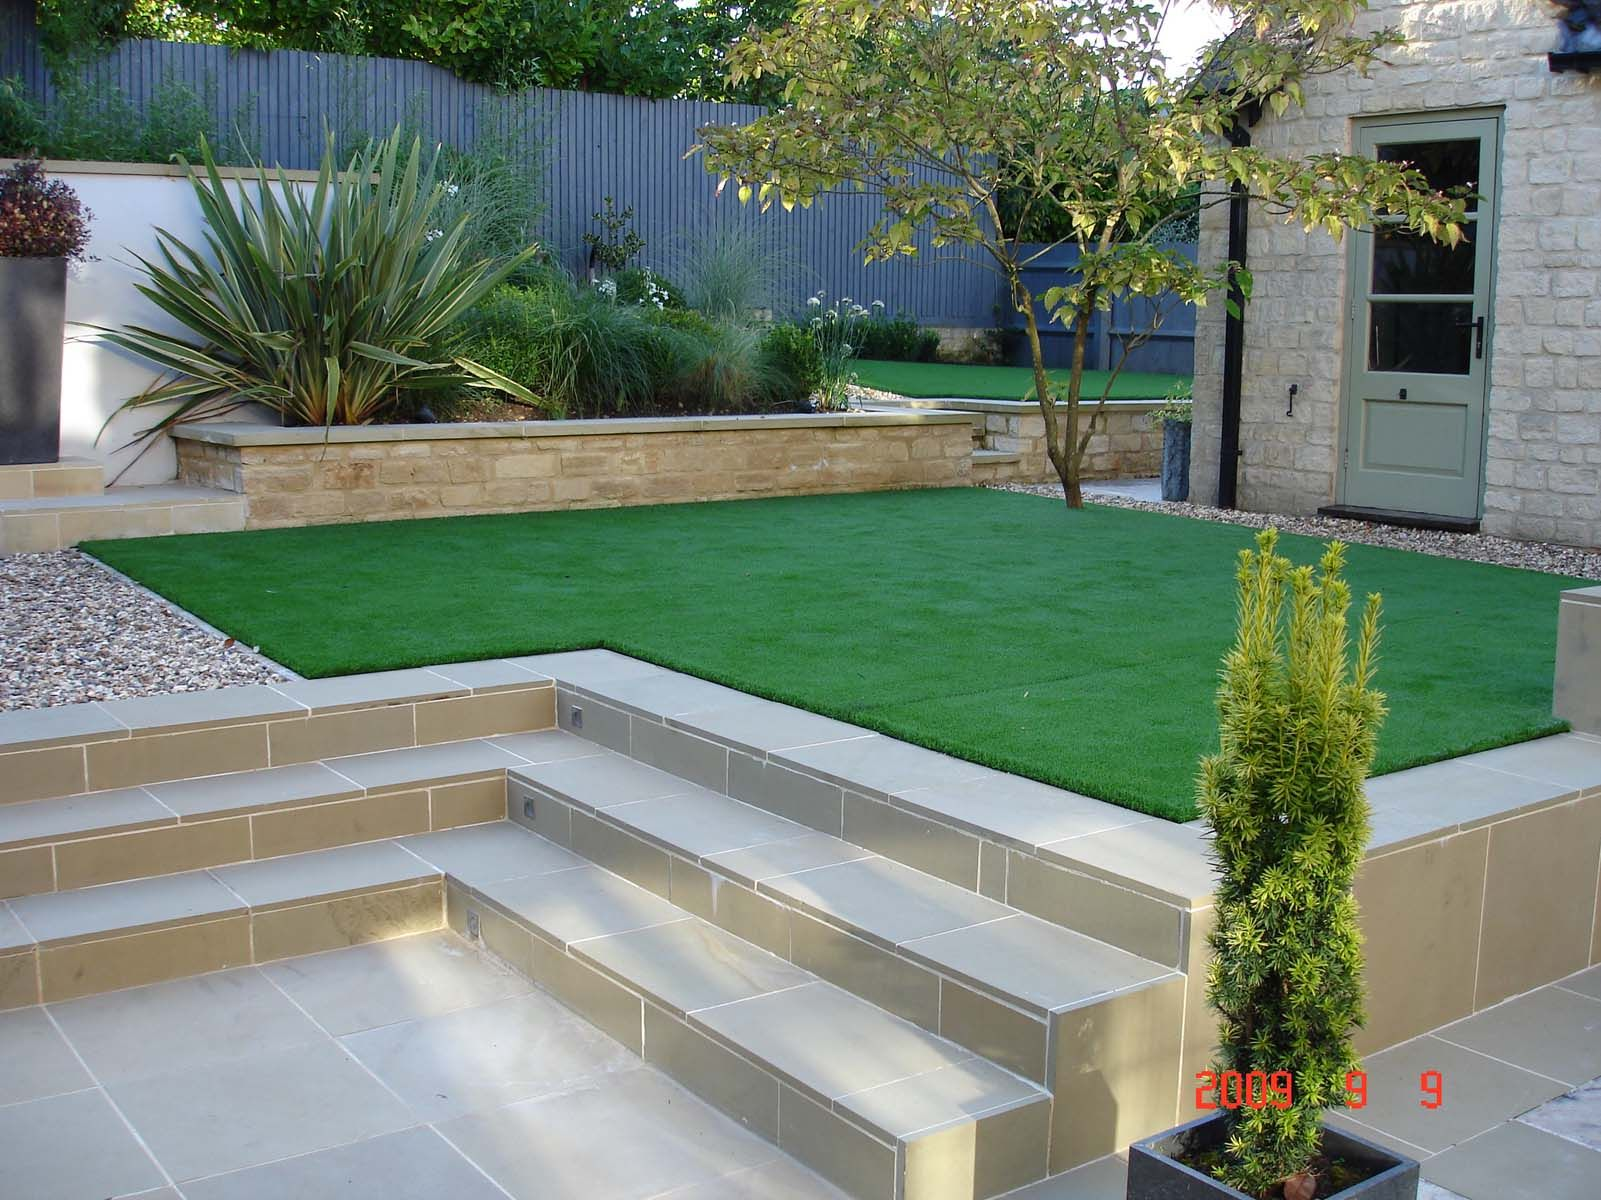 Artificial Grass Garden Designs amazing garden with some great artificial grass perfectly manicured with next to no maintenance all Find This Pin And More On Artificial Grass Ideas